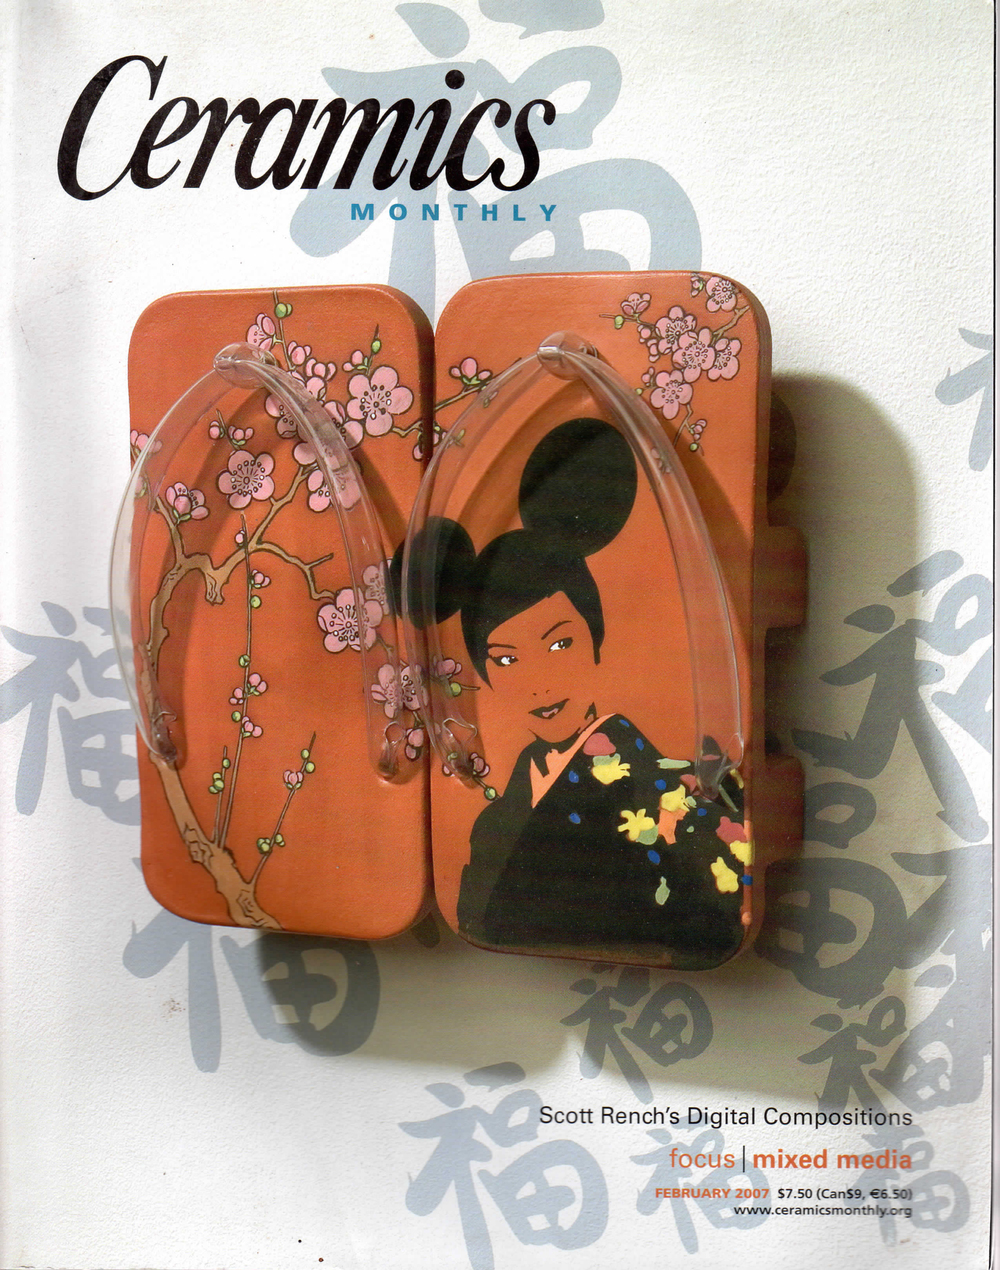 Ceramics Monthly Feb 2007